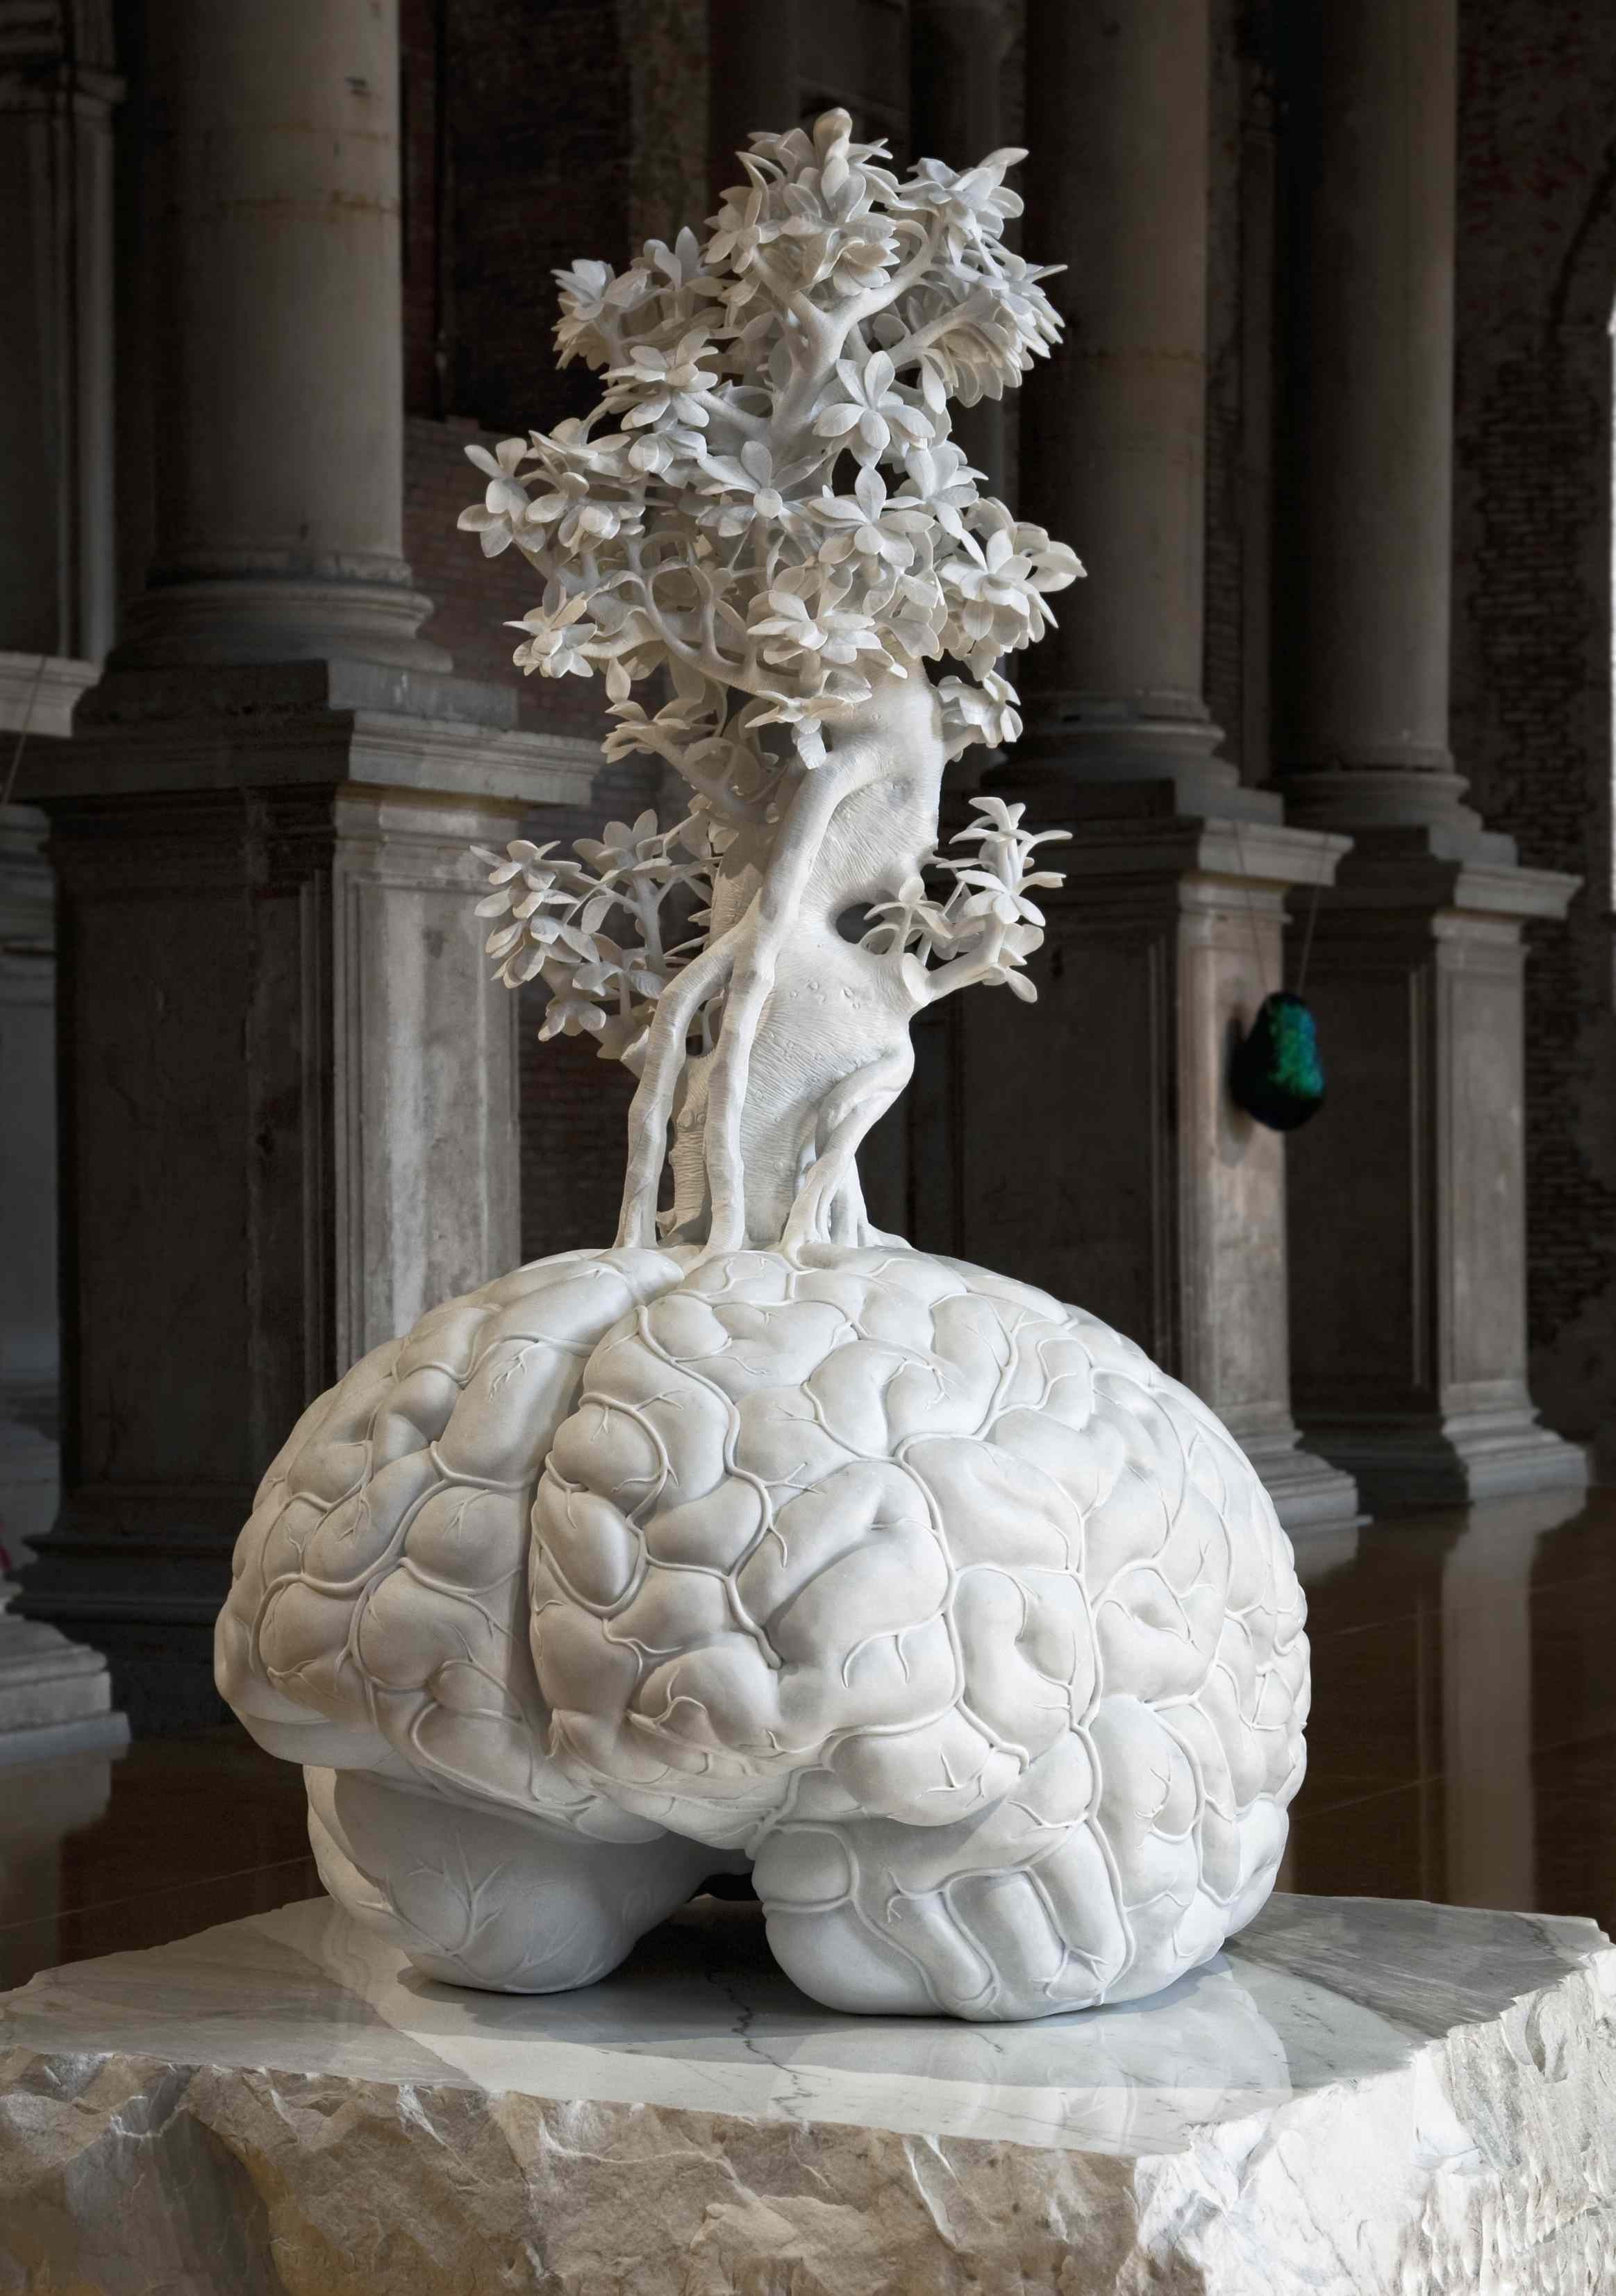 Jan Fabre - Fountain of life mimicking the shape and style of miniature (Pietà III) - 2011